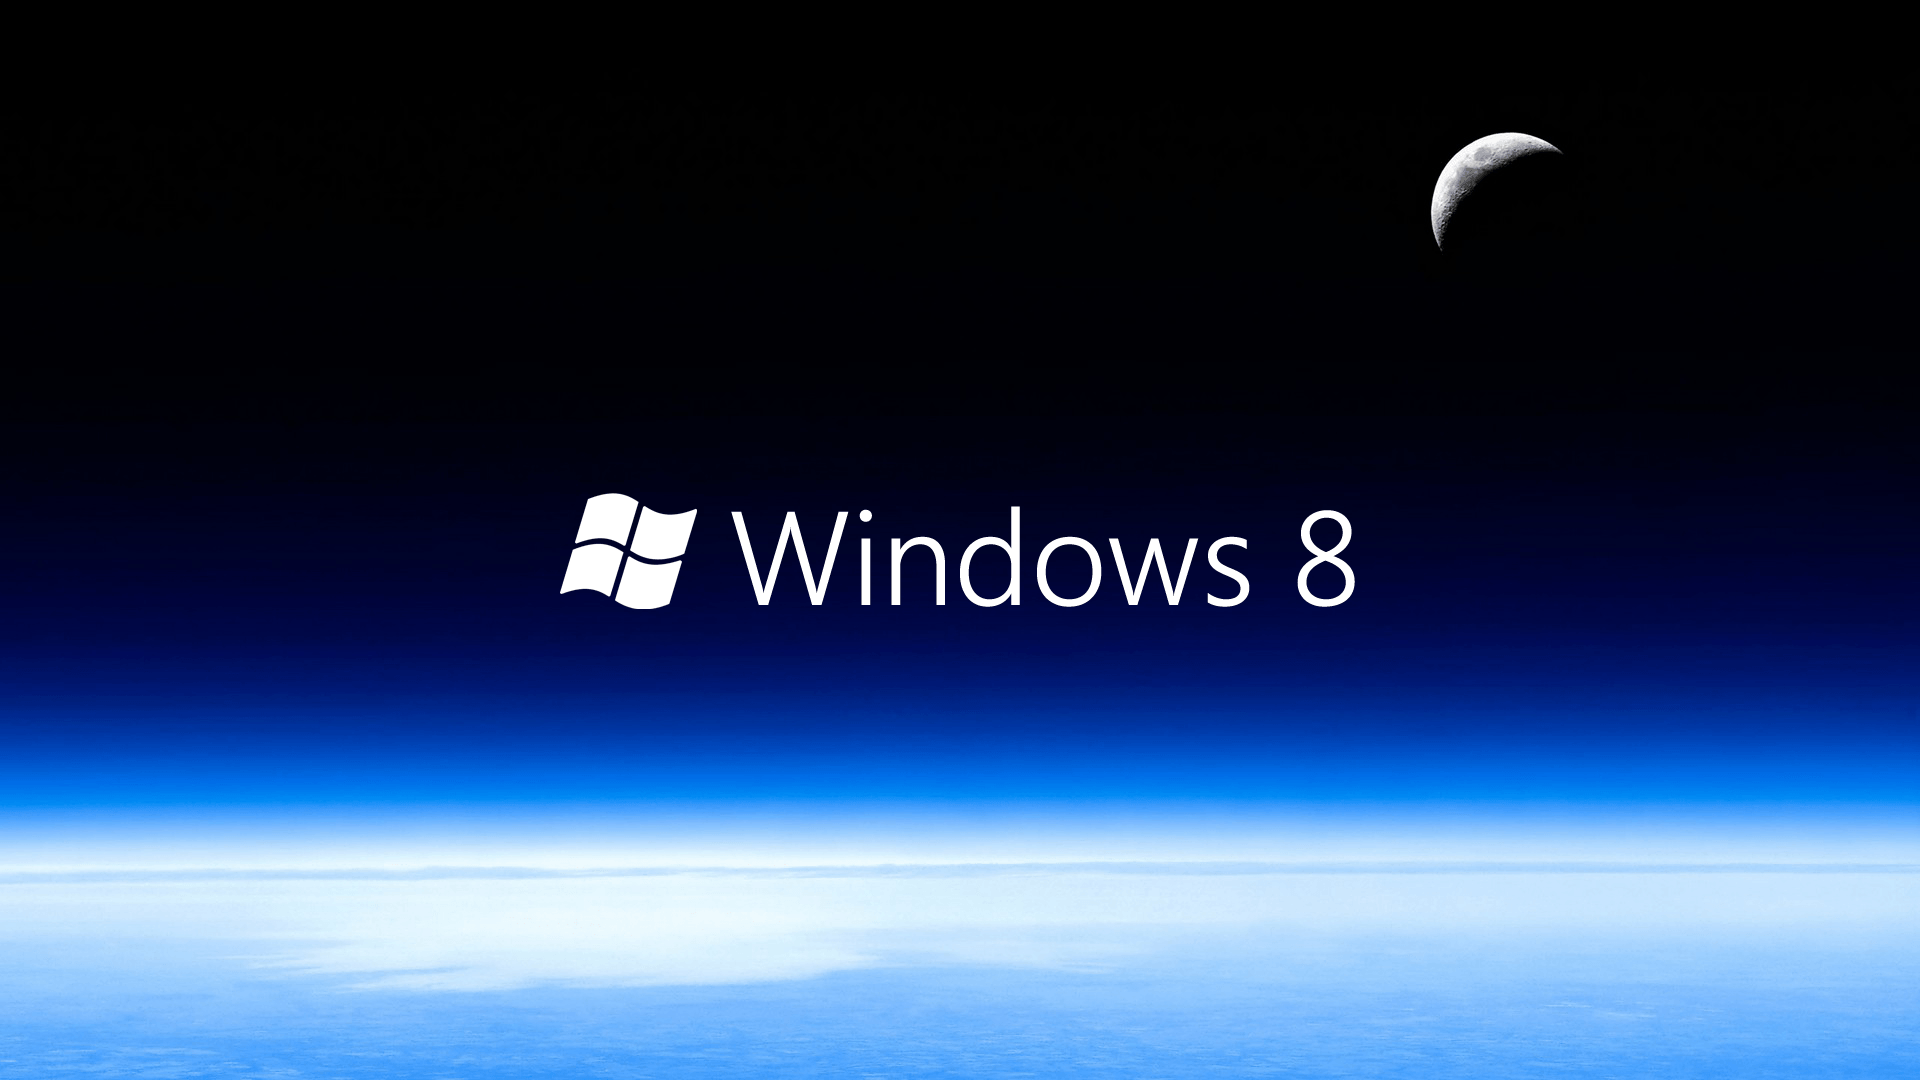 wallpapers for windows 8 laptop - photo #35